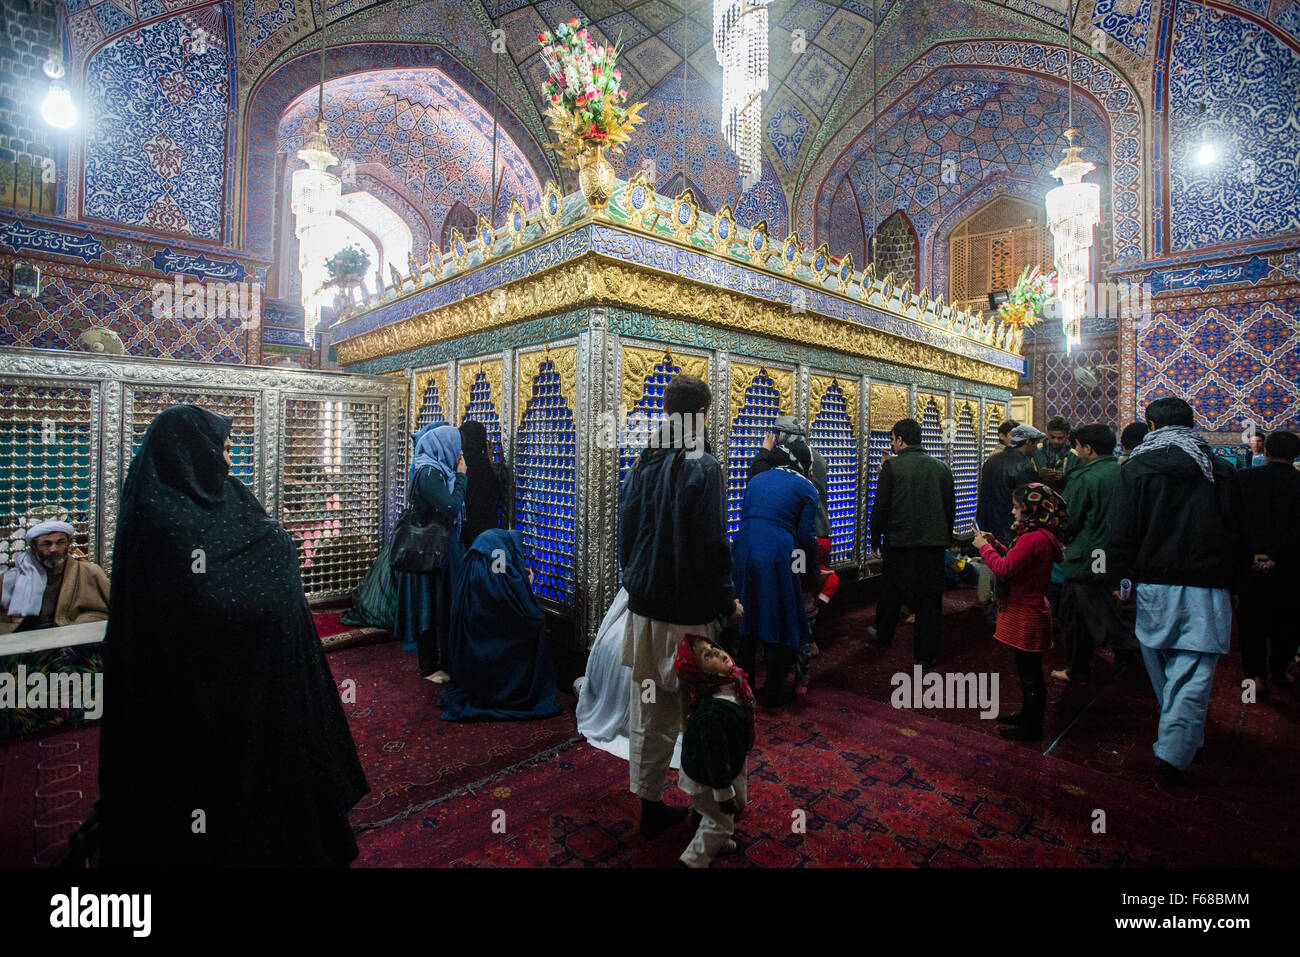 mazar e sharif muslim personals Ethnic hatred led to massacre by taliban in august  dusty city of mazar-e sharif on the northern plains of  predominantly shiite muslim.